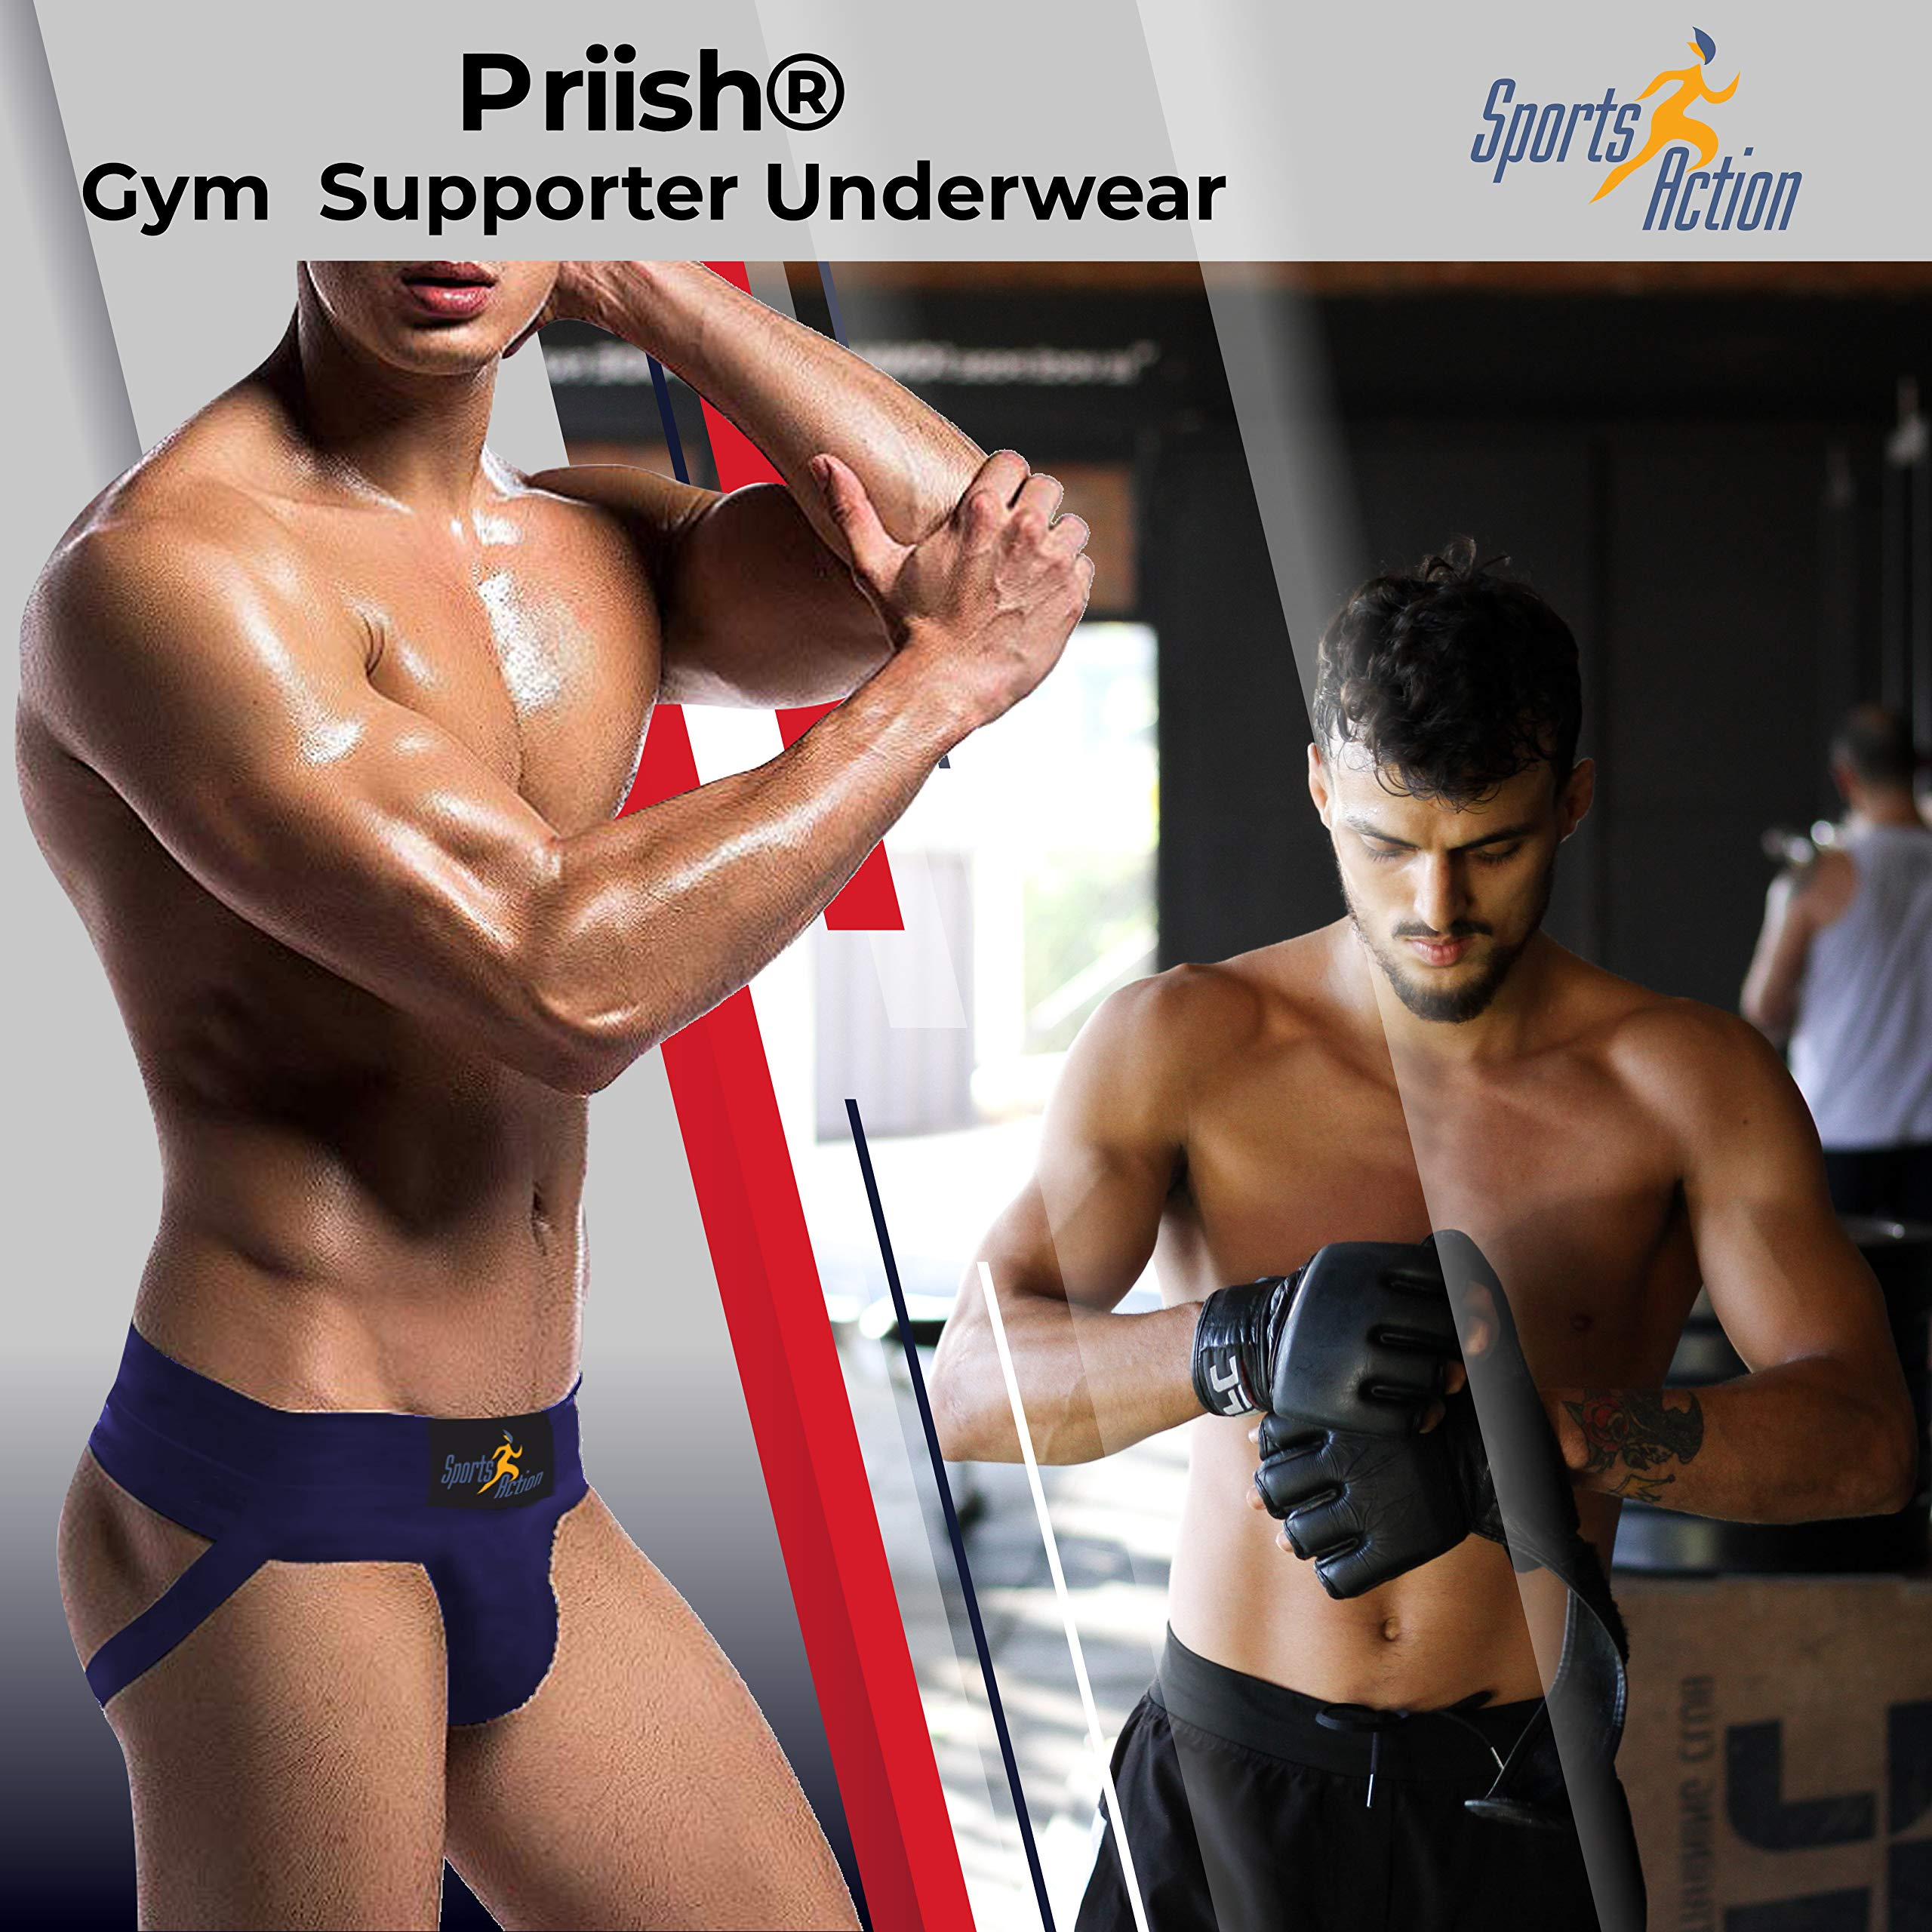 Priish® Men Athletic Gym Supporter Jockstraps for Men Underwear for Sports Outdoor Cricket with Cup Pocket - Blue product image